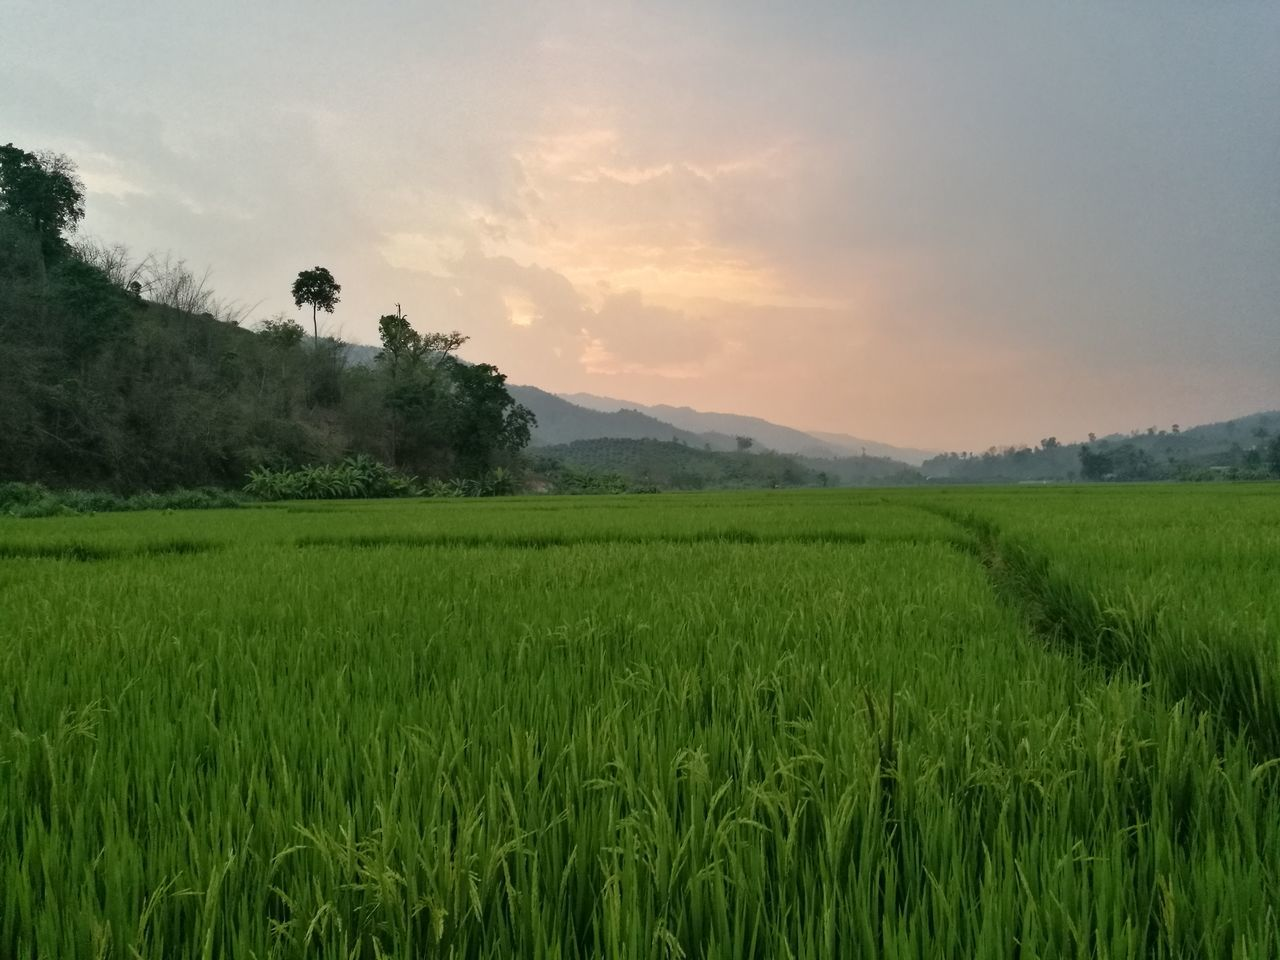 agriculture, field, growth, farm, nature, landscape, crop, tranquil scene, rural scene, beauty in nature, tranquility, green color, scenics, cultivated land, no people, sky, rice paddy, cereal plant, rice - cereal plant, outdoors, sunset, grass, tree, wheat, day